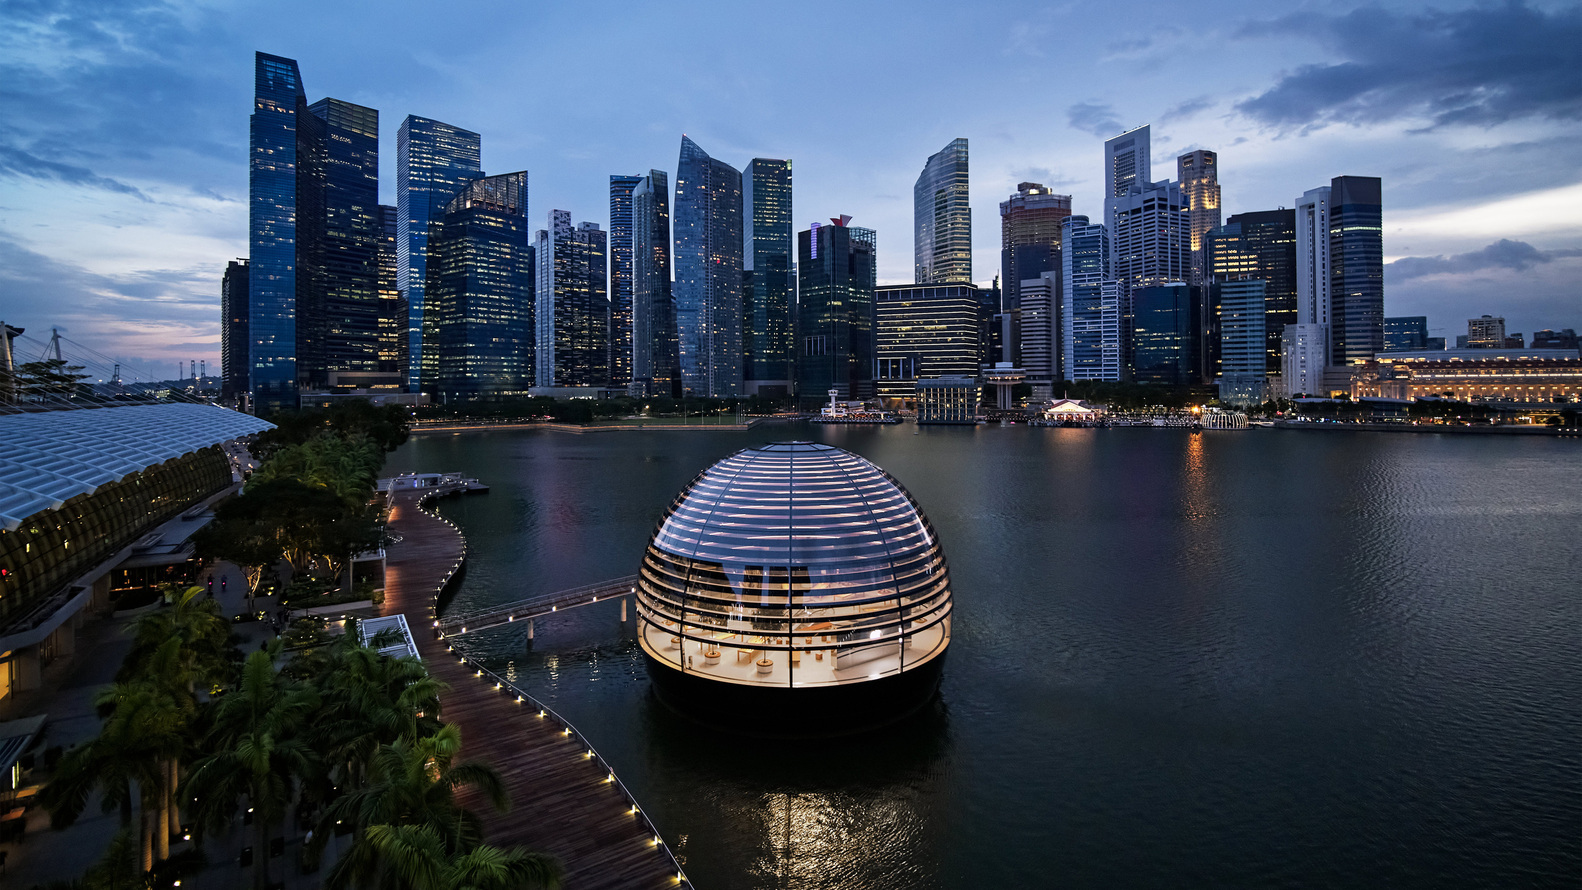 apple_nso-marina-bay-sands_aerial-view_09072020